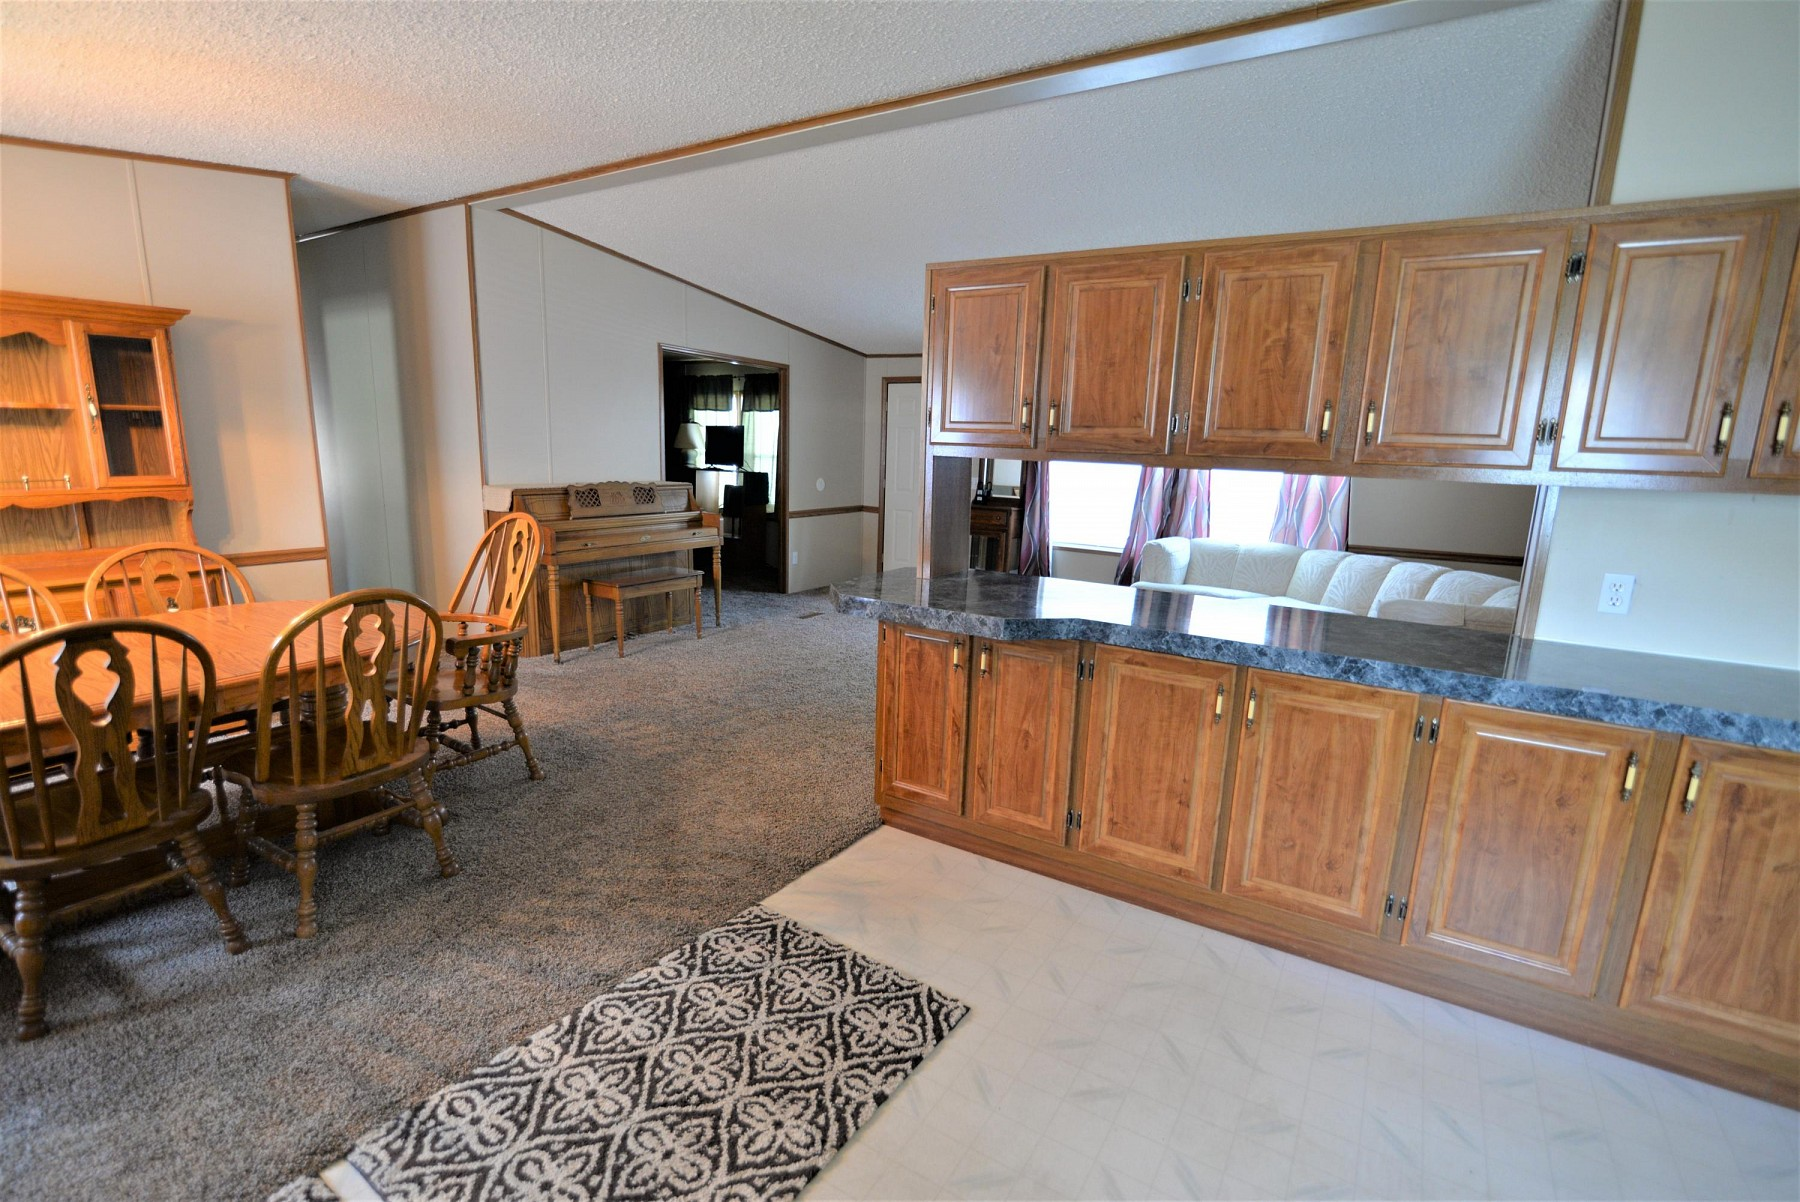 600 5th Avenue S, Brookings, SD 57006